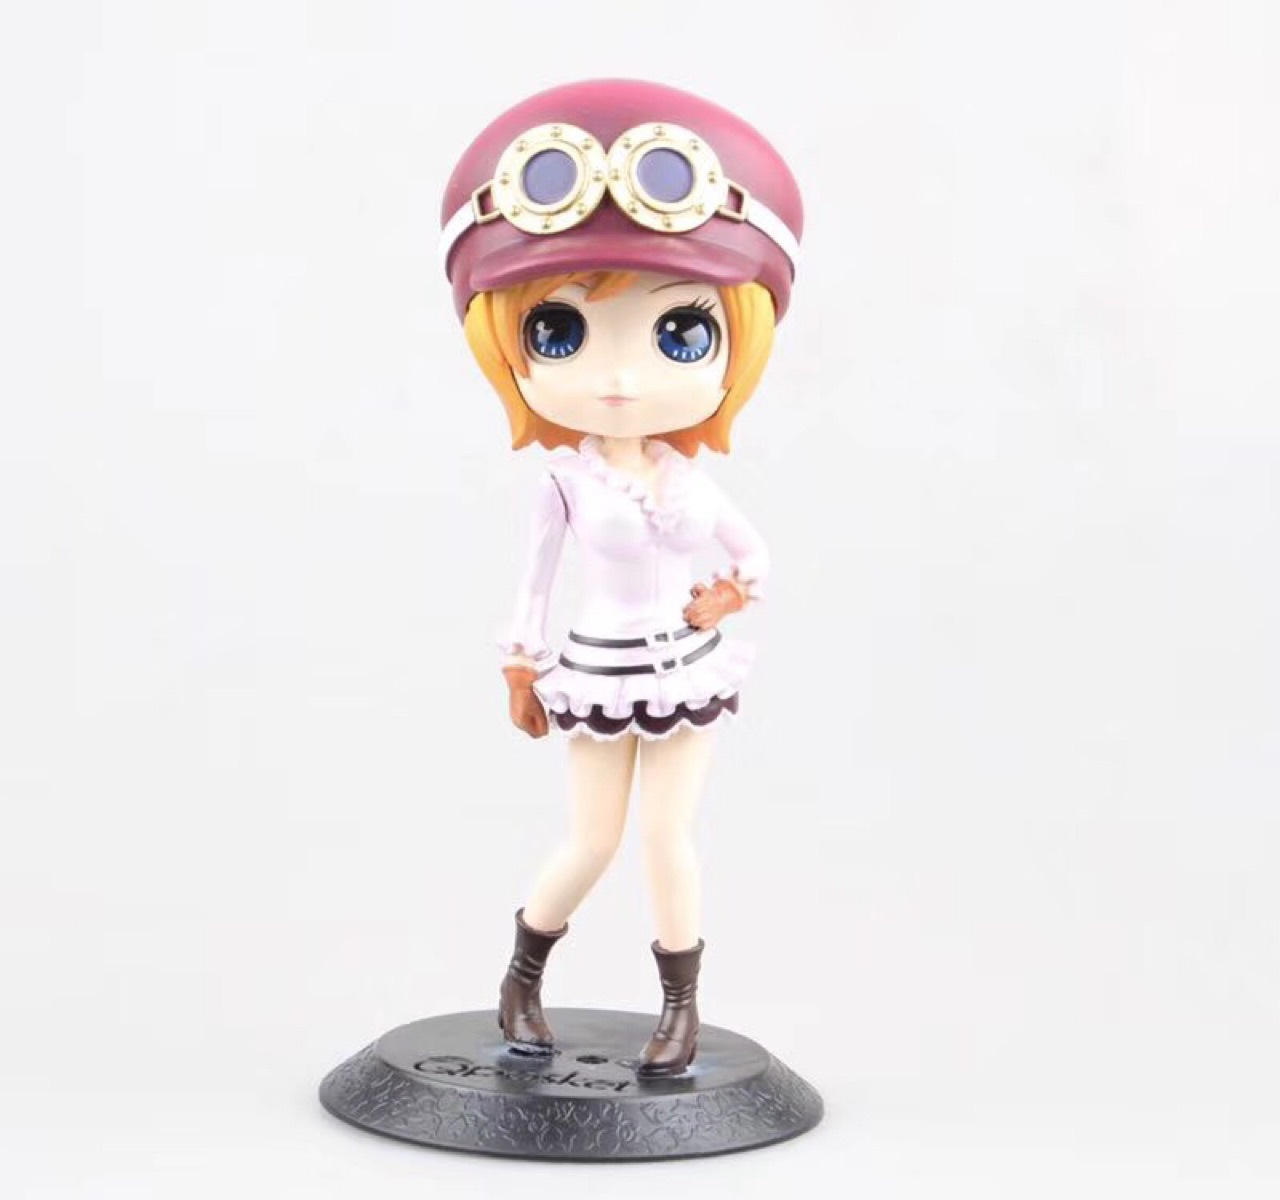 QPosket Cute Big eyes Anime One Piece Nami & Koala Lovely Dolls Figure Model Toys 14cm for girl